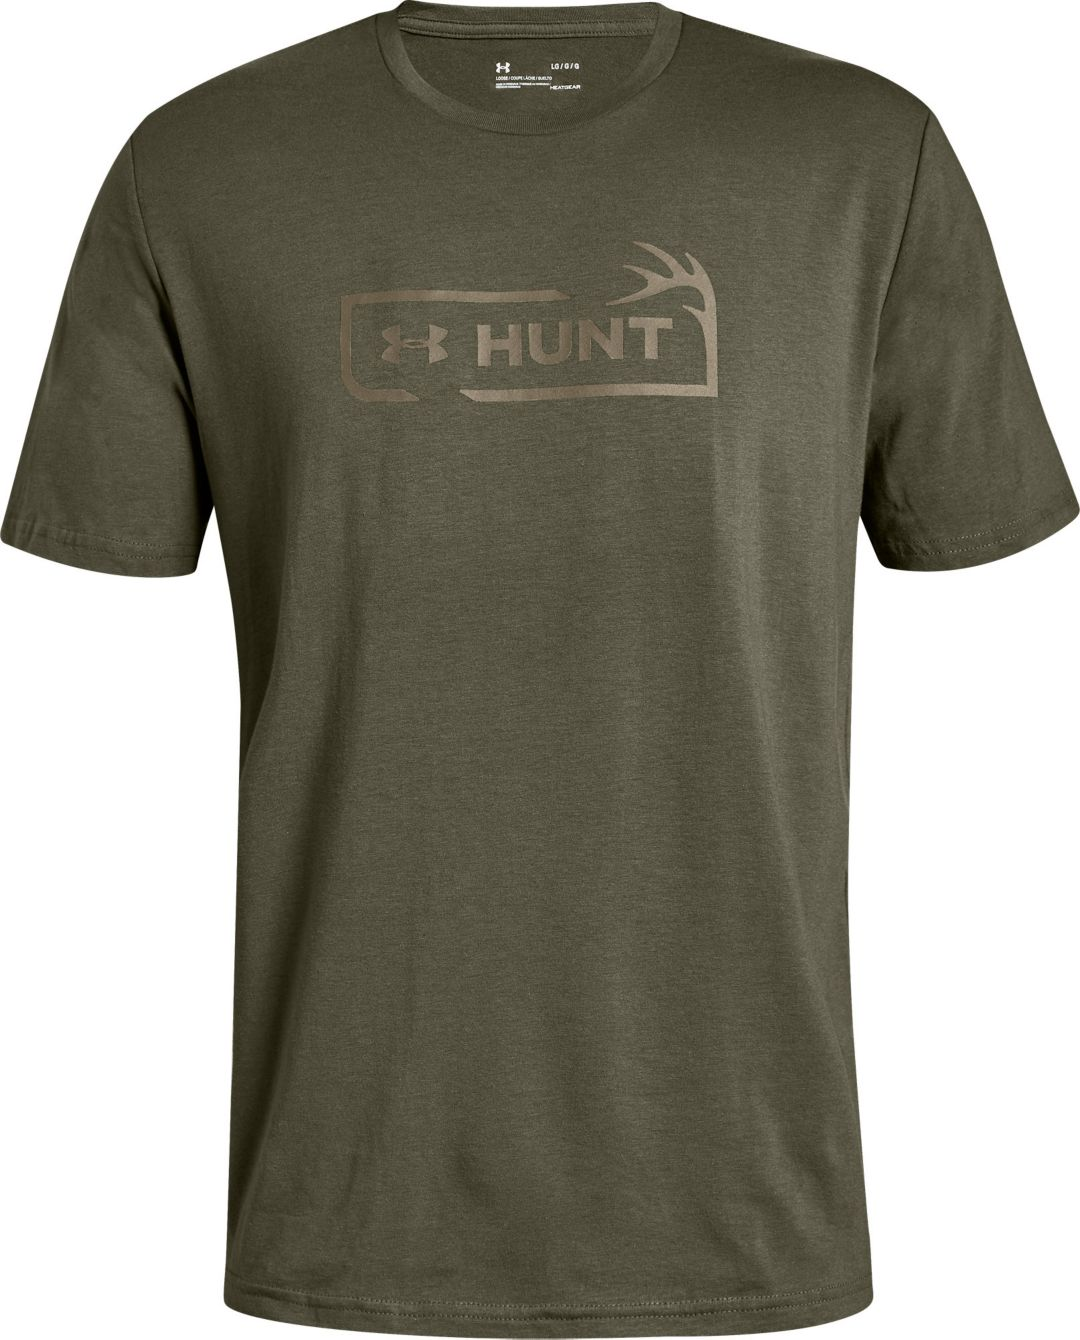 a69b617dfe Under Armour Men's Hunt Icon Short Sleeve T-Shirt